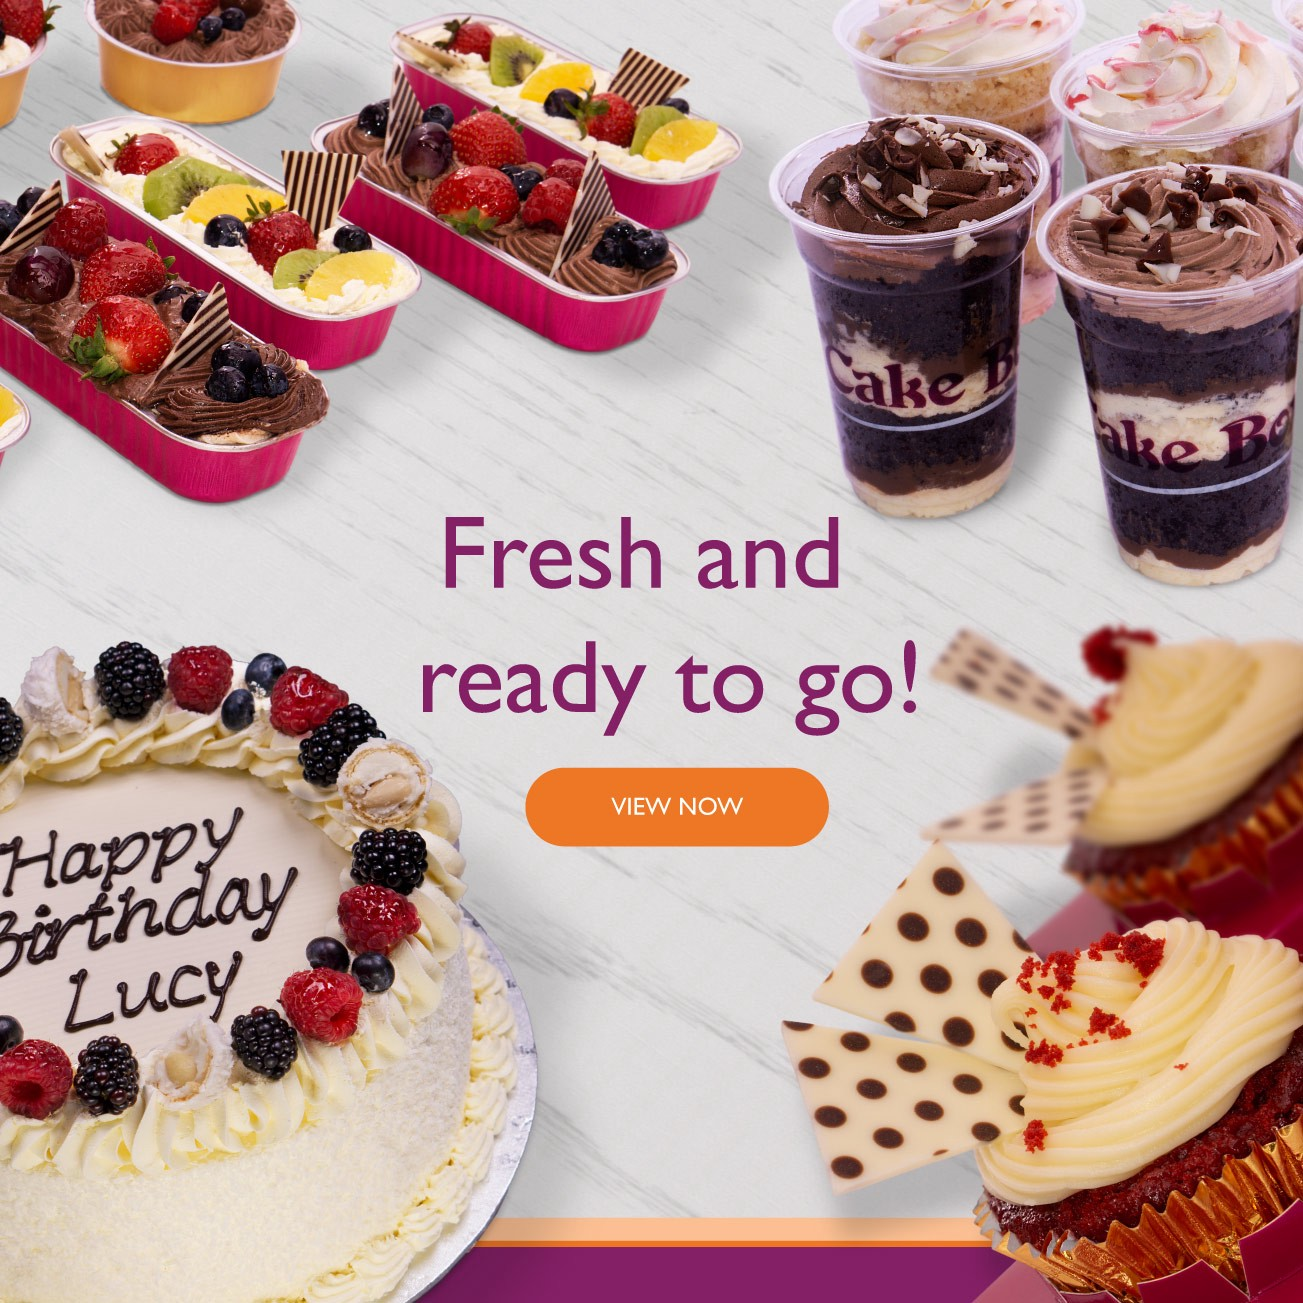 Swell Look For The Amazing And Delicious Birthday Cake Eggfree Cake Personalised Birthday Cards Veneteletsinfo